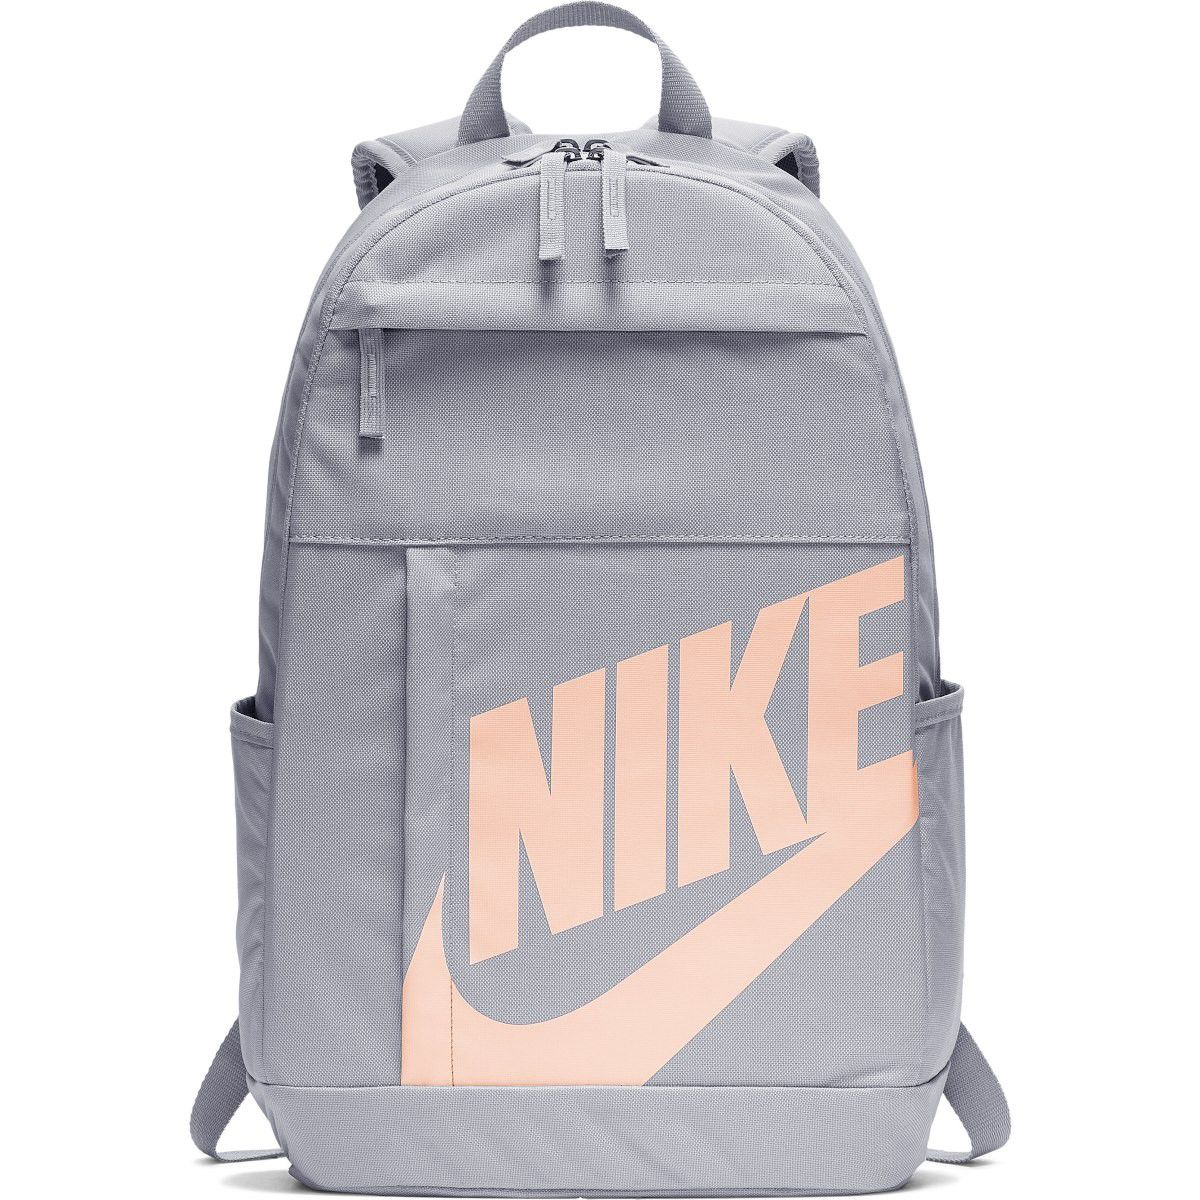 Mochila Nike Element Backpack 21L Feminina - Cinza e Rosa